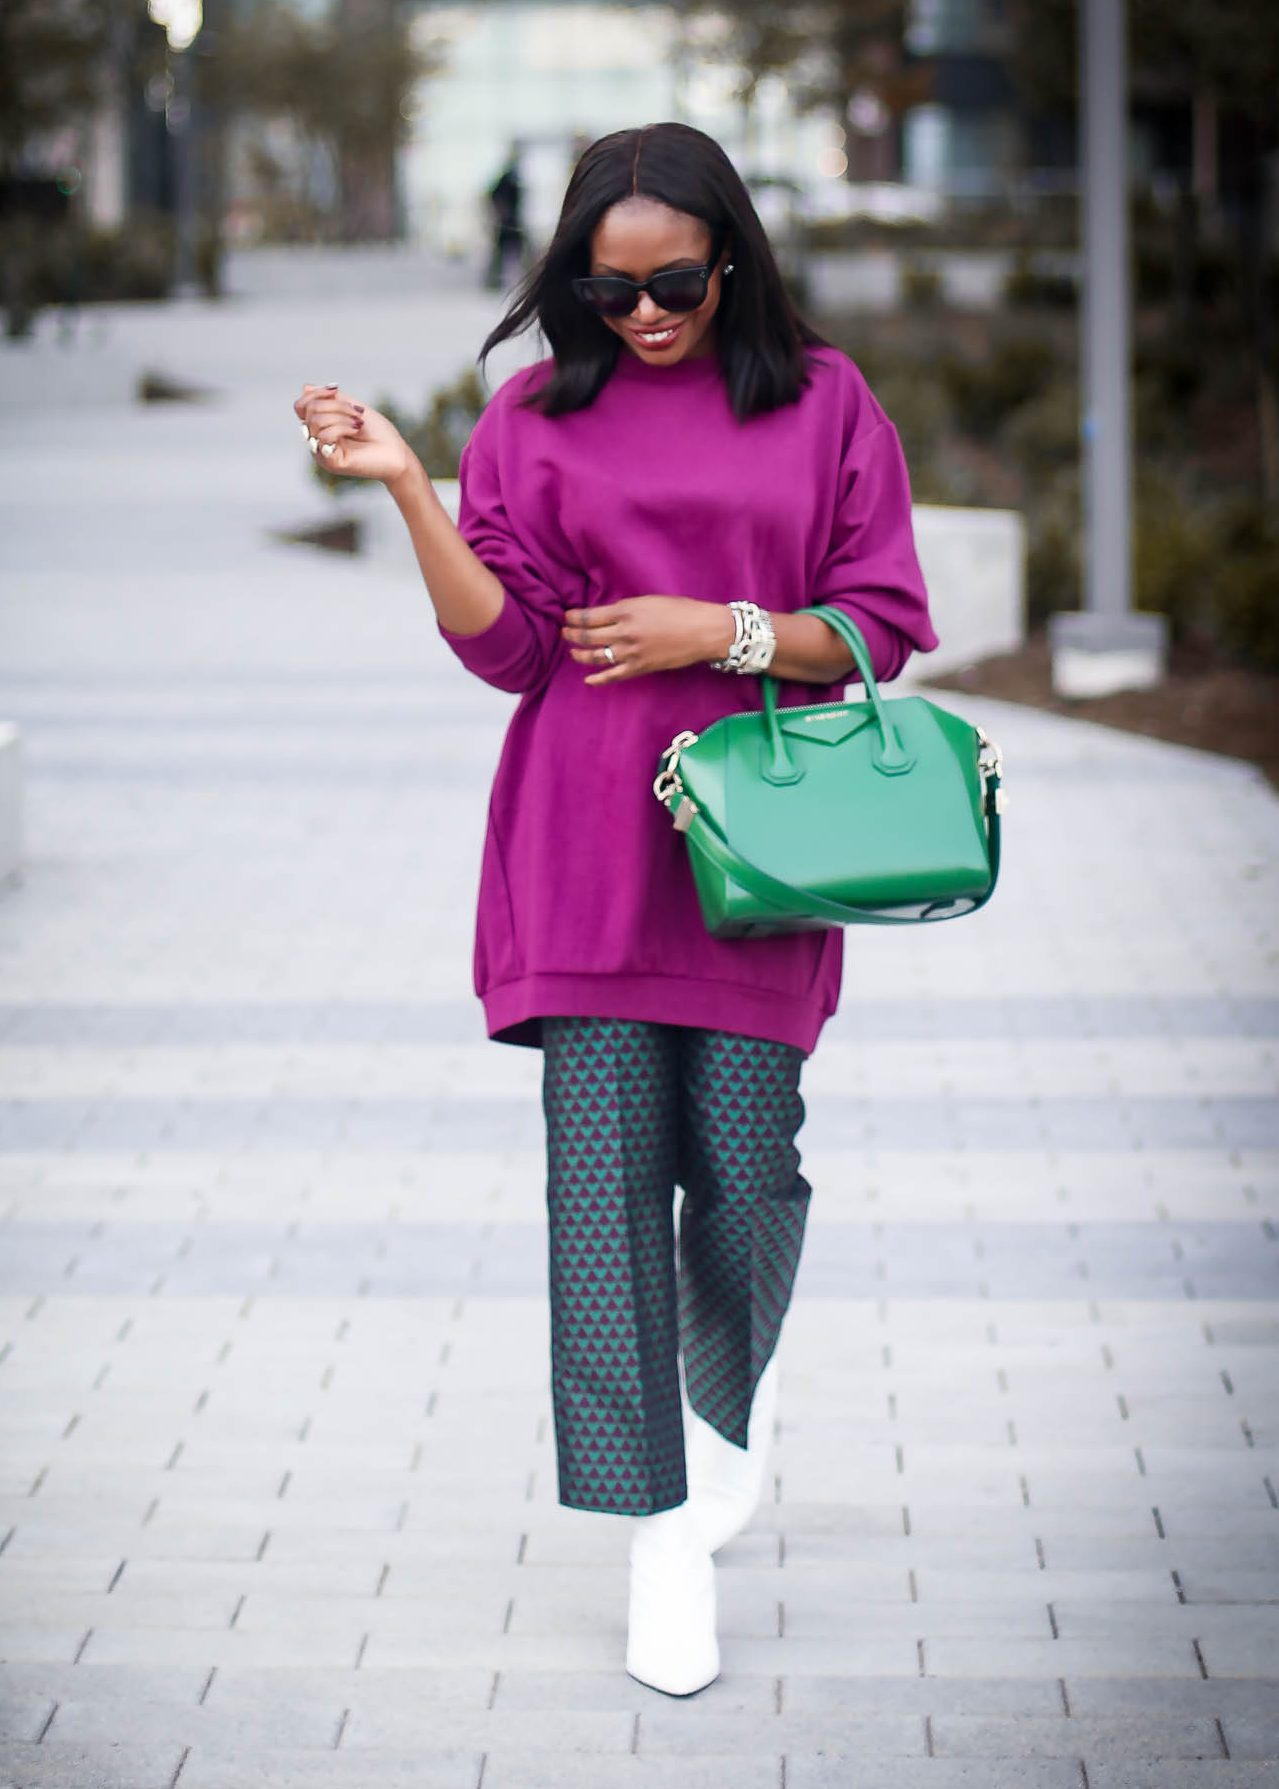 HOW TO LOOK CHIC IN AN OVERSIZED SWEATER